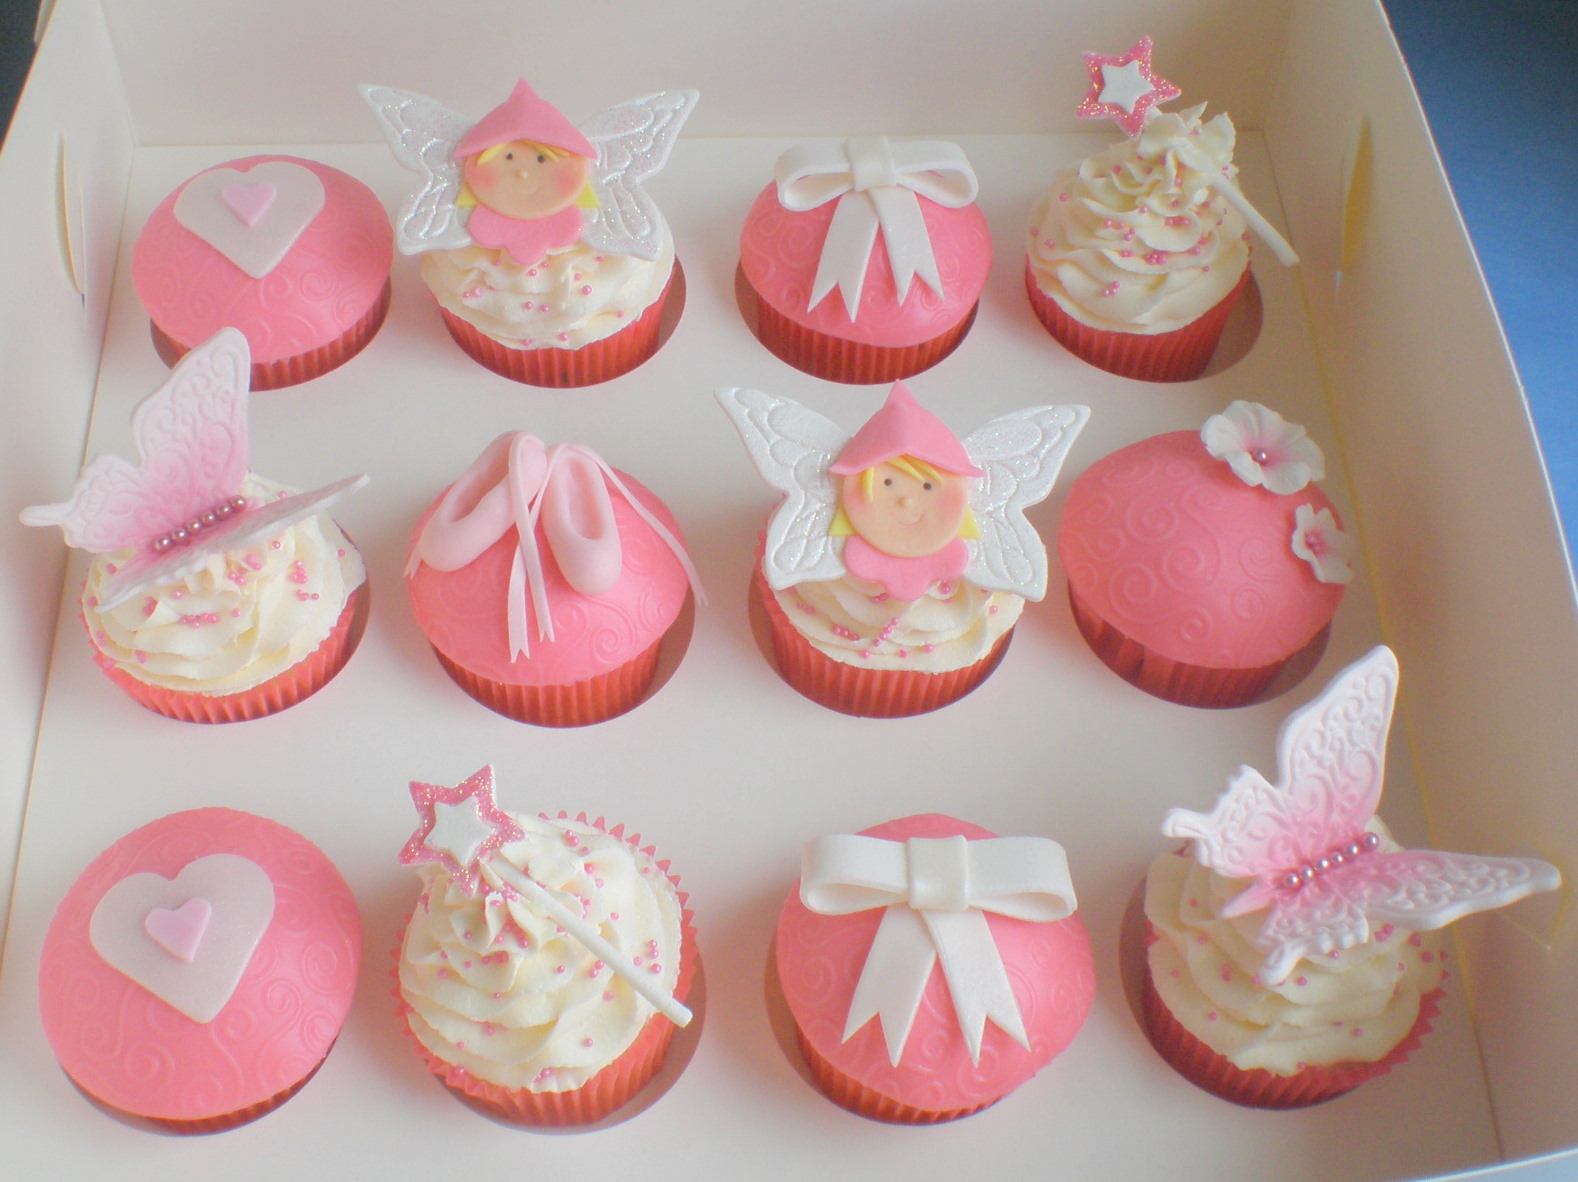 Cute Girly Cupcakes